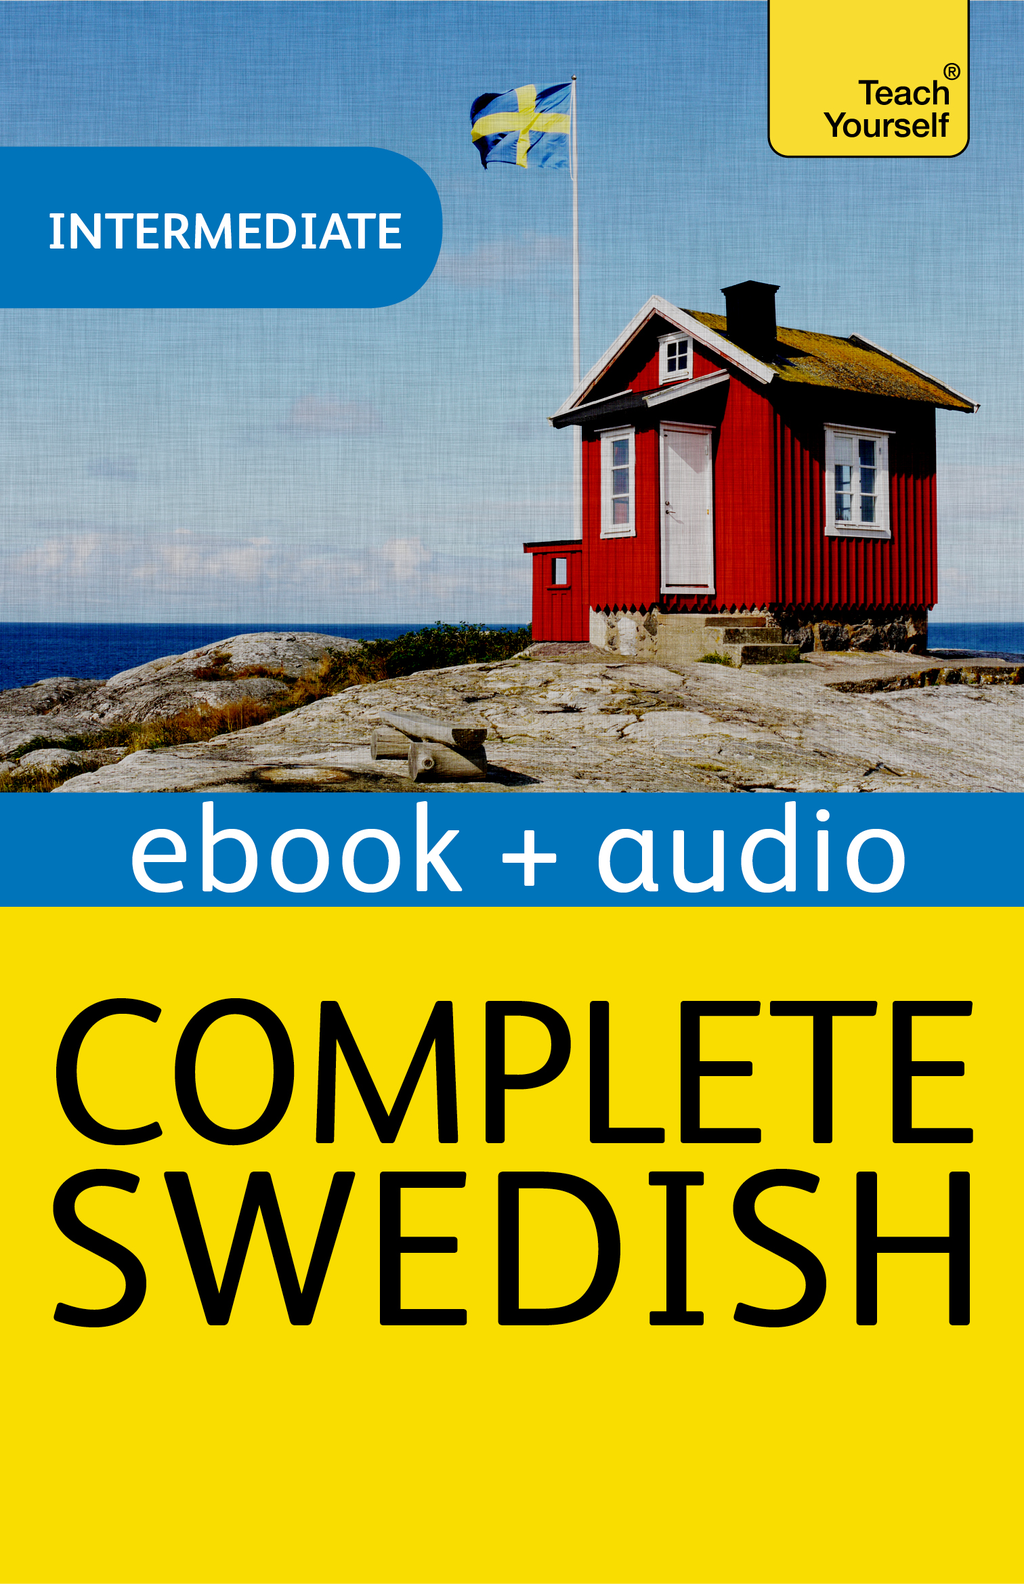 Complete Swedish: Teach Yourself Audio eBook (Enhanced Edition)